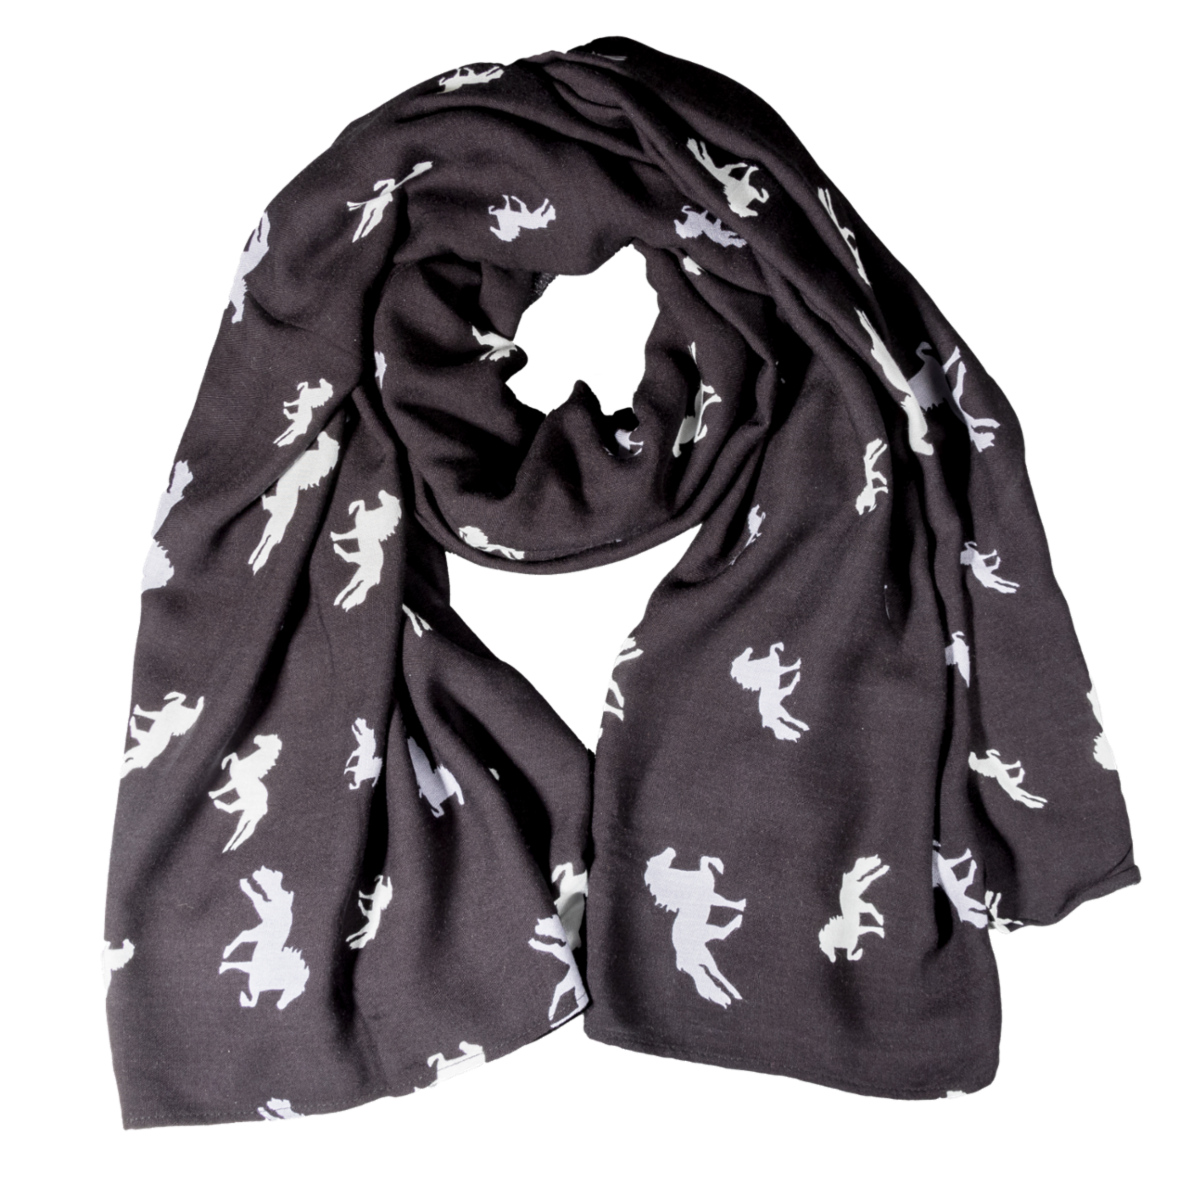 Scarf with horses